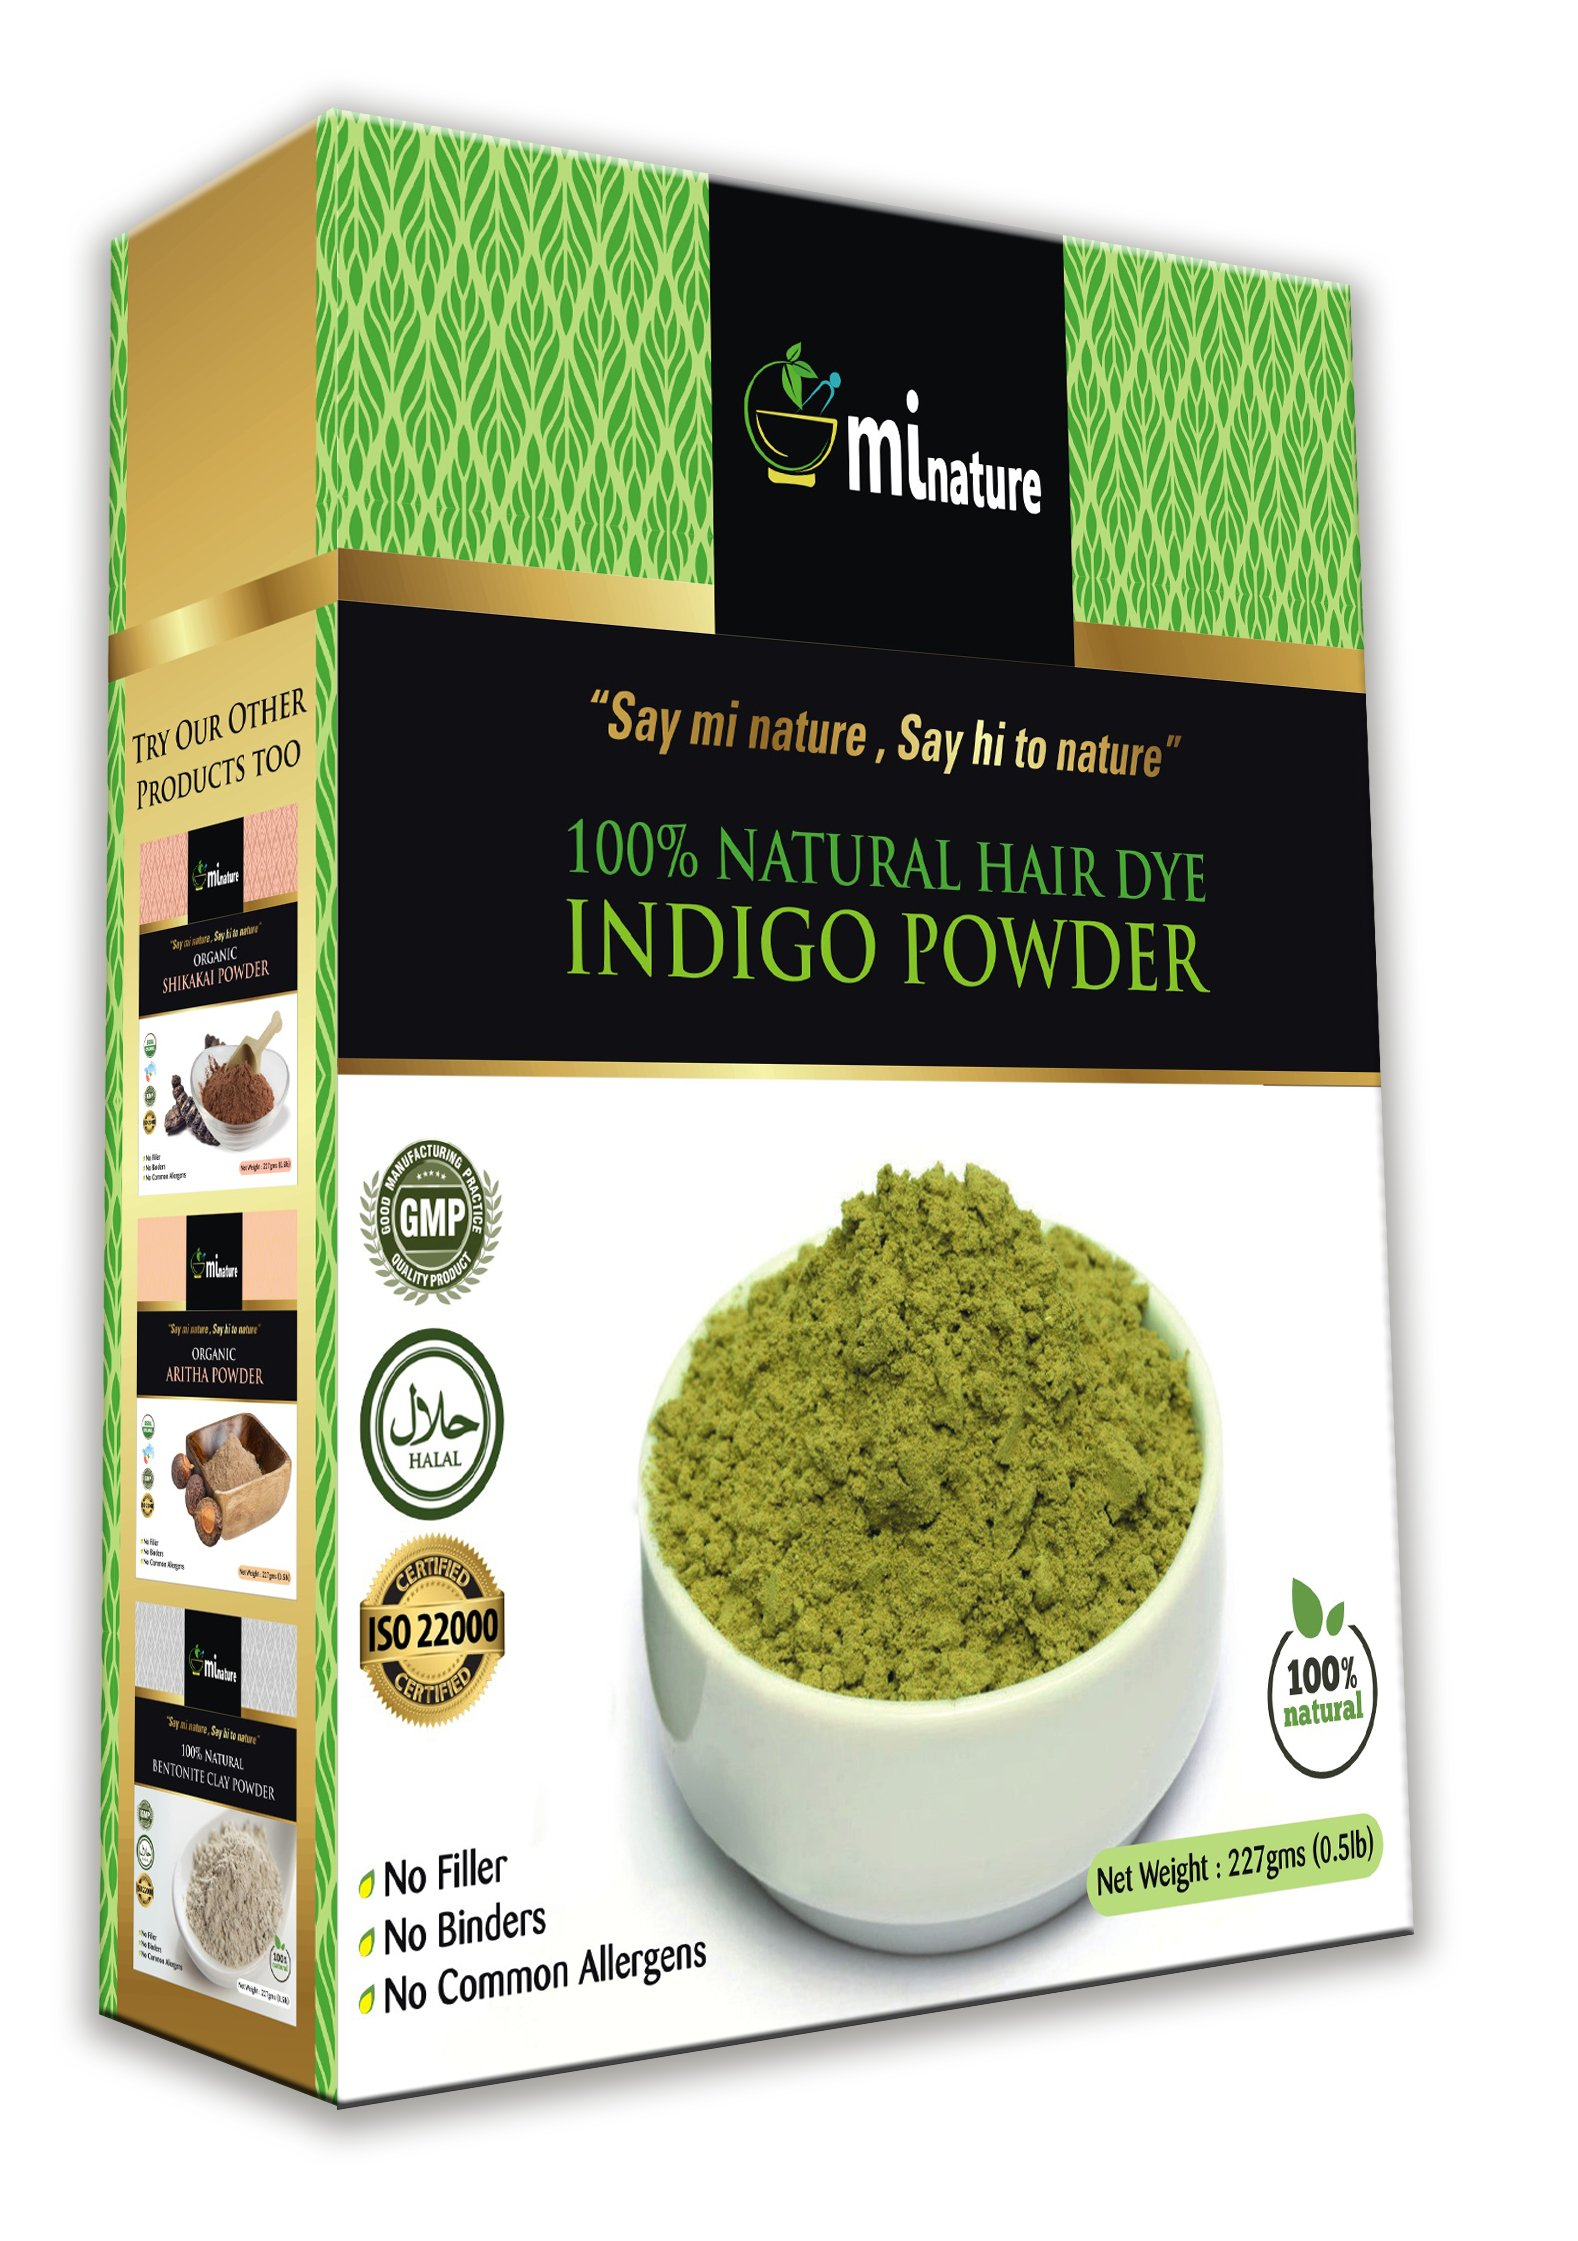 mi nature Indigo Powder, Indigofera tinctoria, 100% Natural Hair Color, Pure Indigo hair dye, for blue/black hair, 1/2 LB (227 grams)